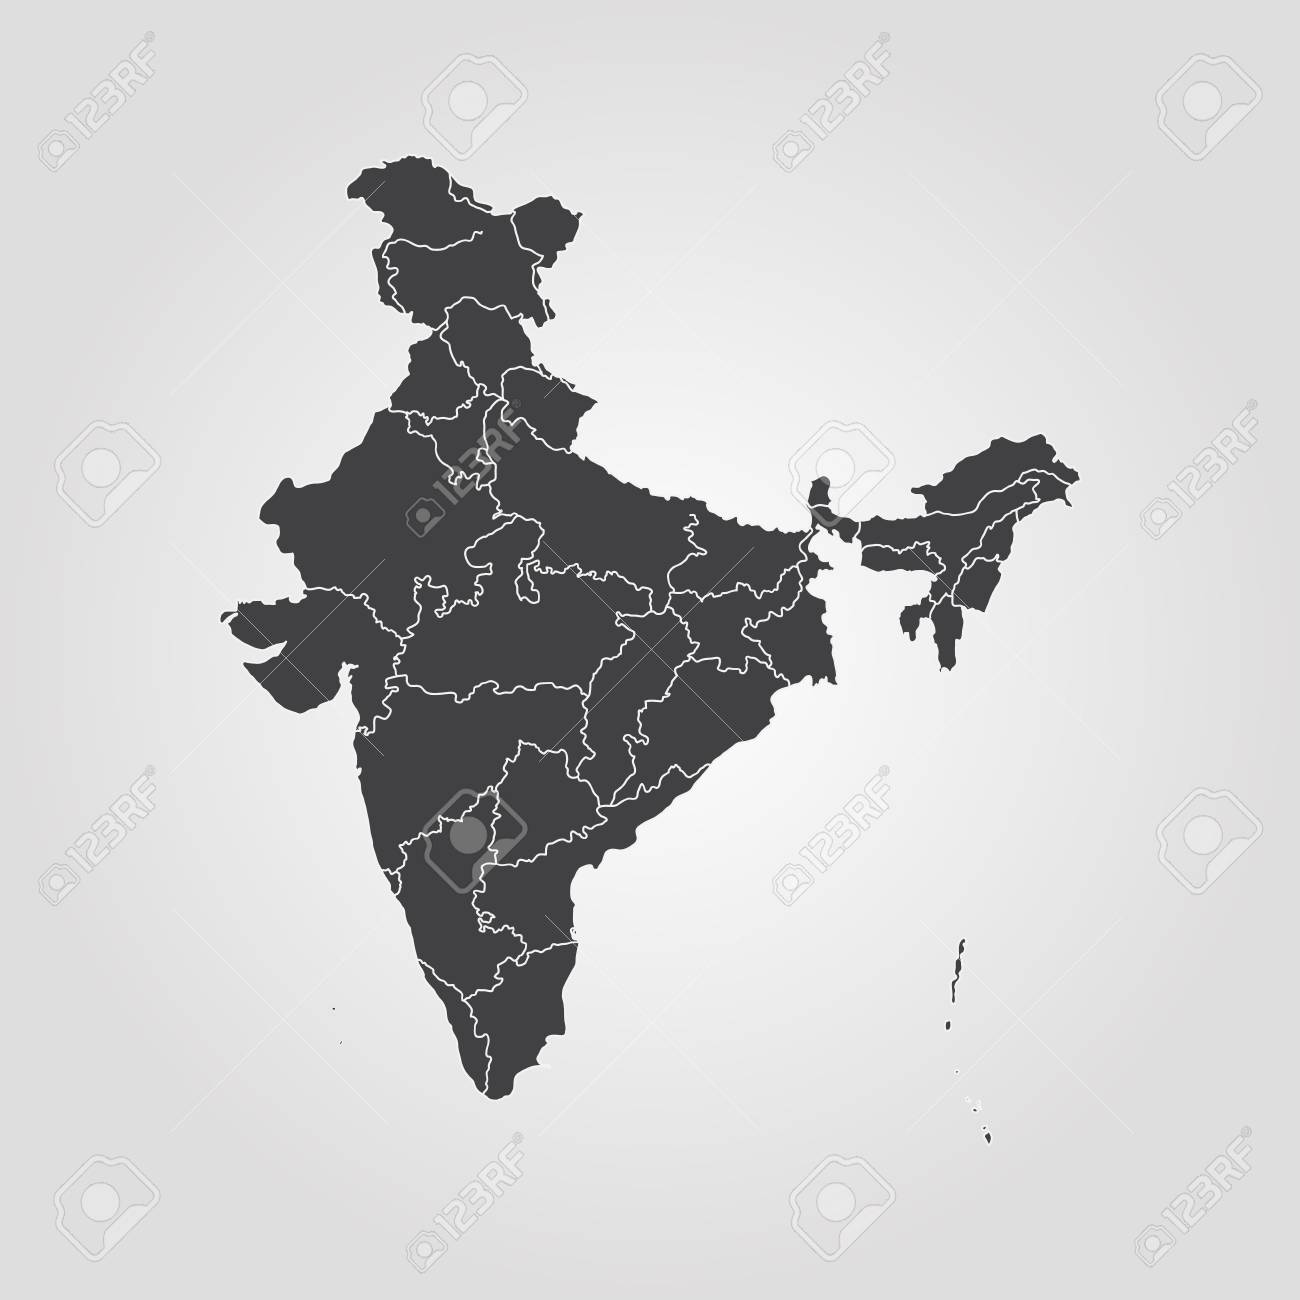 Map of india vector illustration world map royalty free cliparts map of india vector illustration world map stock vector 89750516 gumiabroncs Image collections